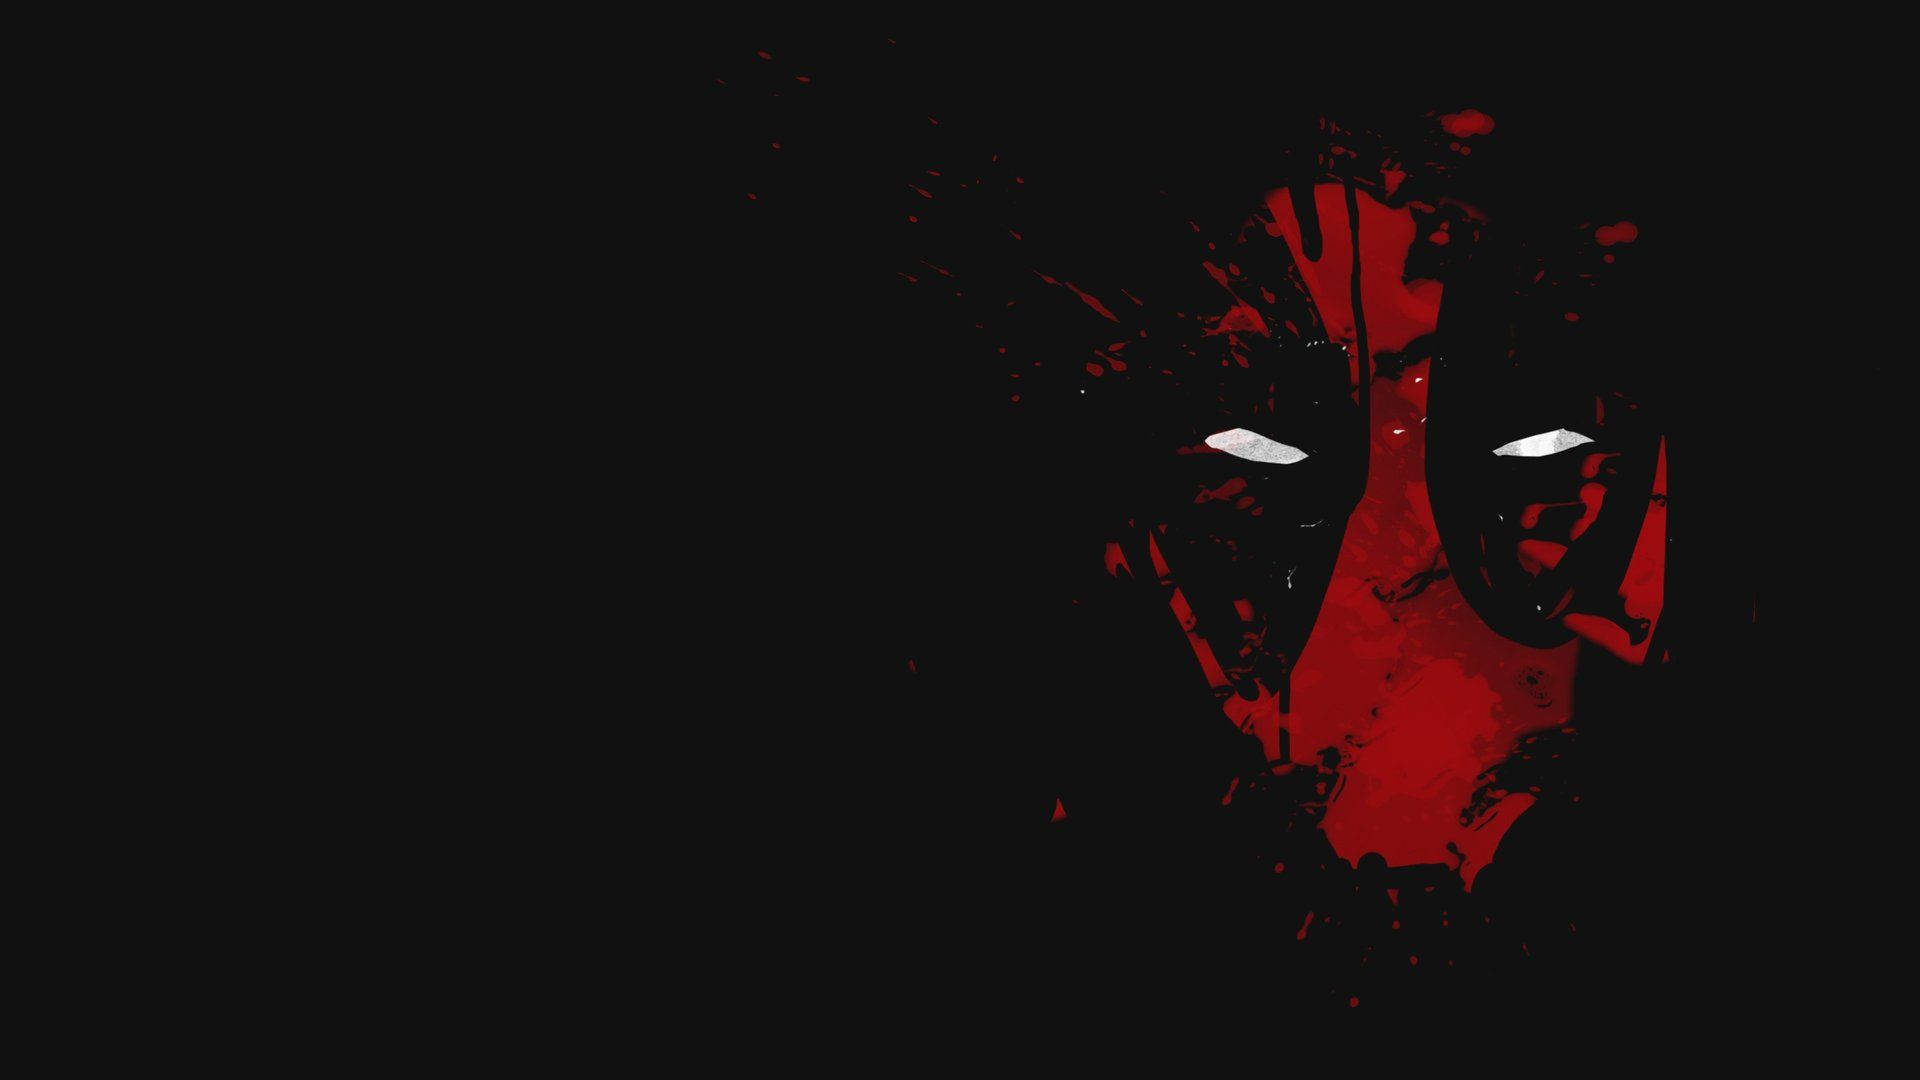 Wallpapers For Laptop 4k Google Search Deadpool Logo Wallpaper 4k Wallpapers For Pc Deadpool Wallpaper